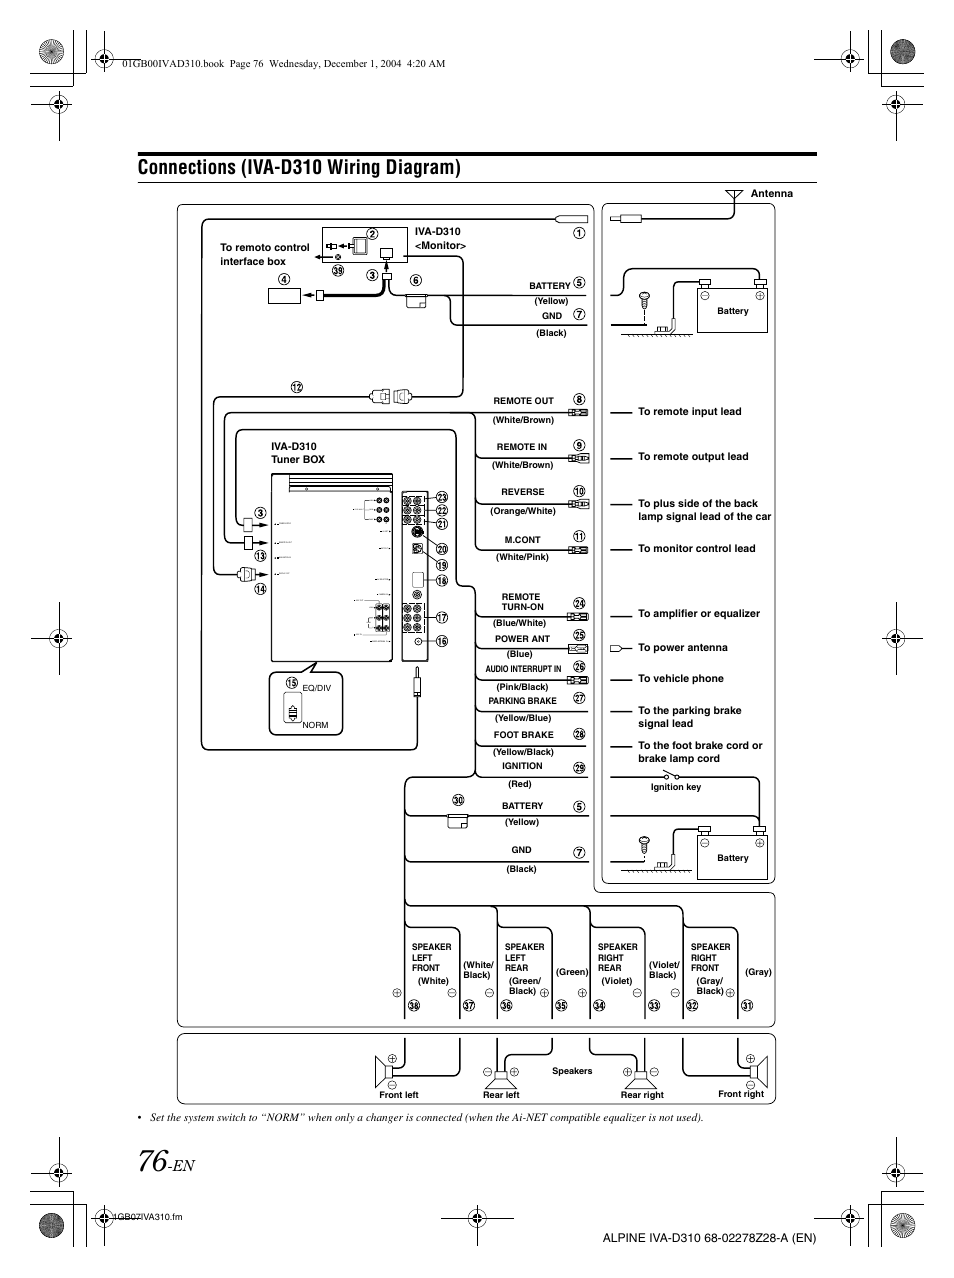 alpine iva d310 page78 alpine iva d310 wiring diagram alpine iva w205 wiring diagram at bayanpartner.co